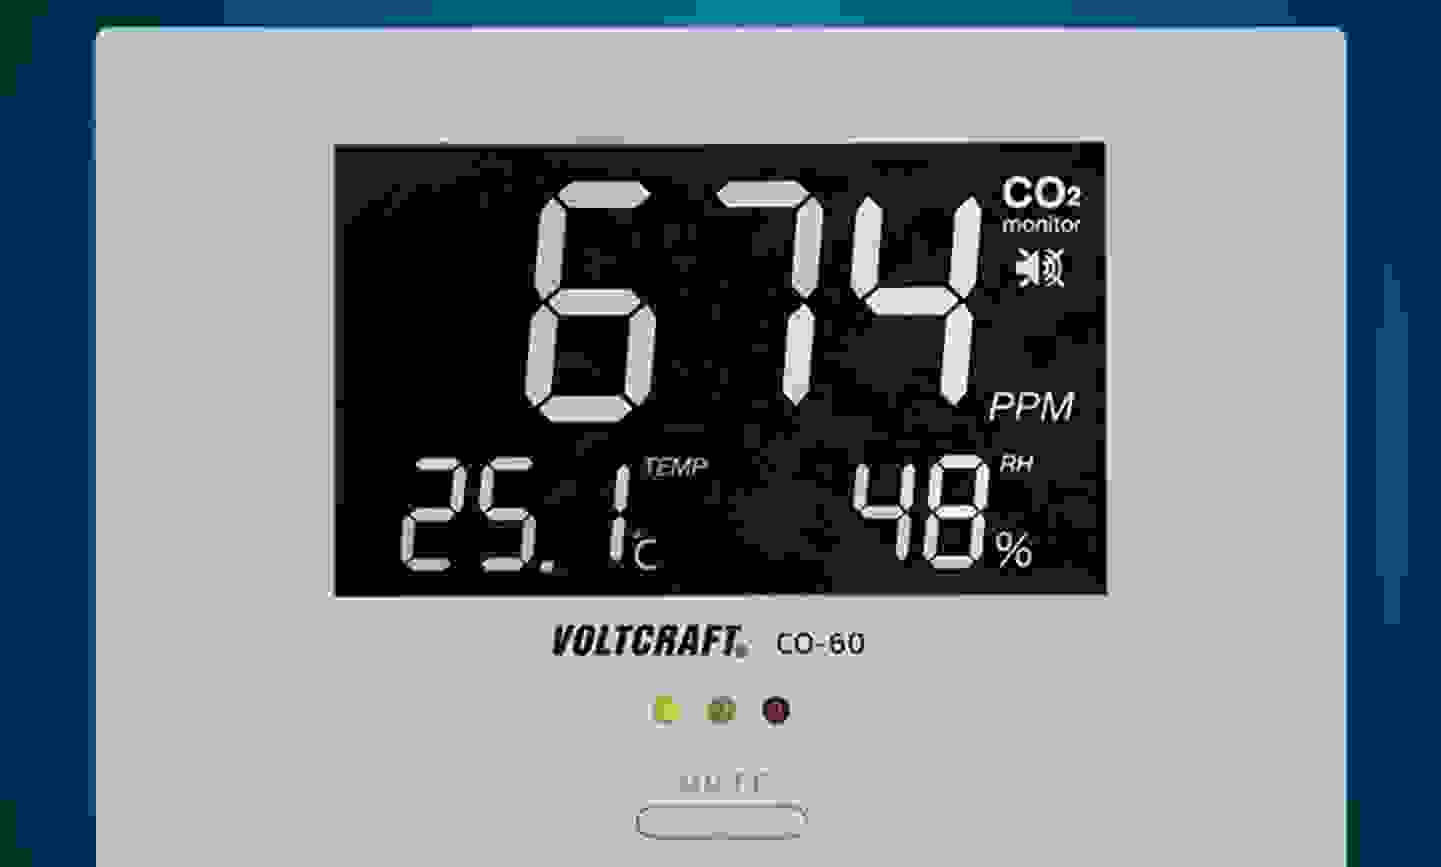 Voltcraft - CO-60 - Détecteur de dioxyde de carbone 0 - 3000 ppm »